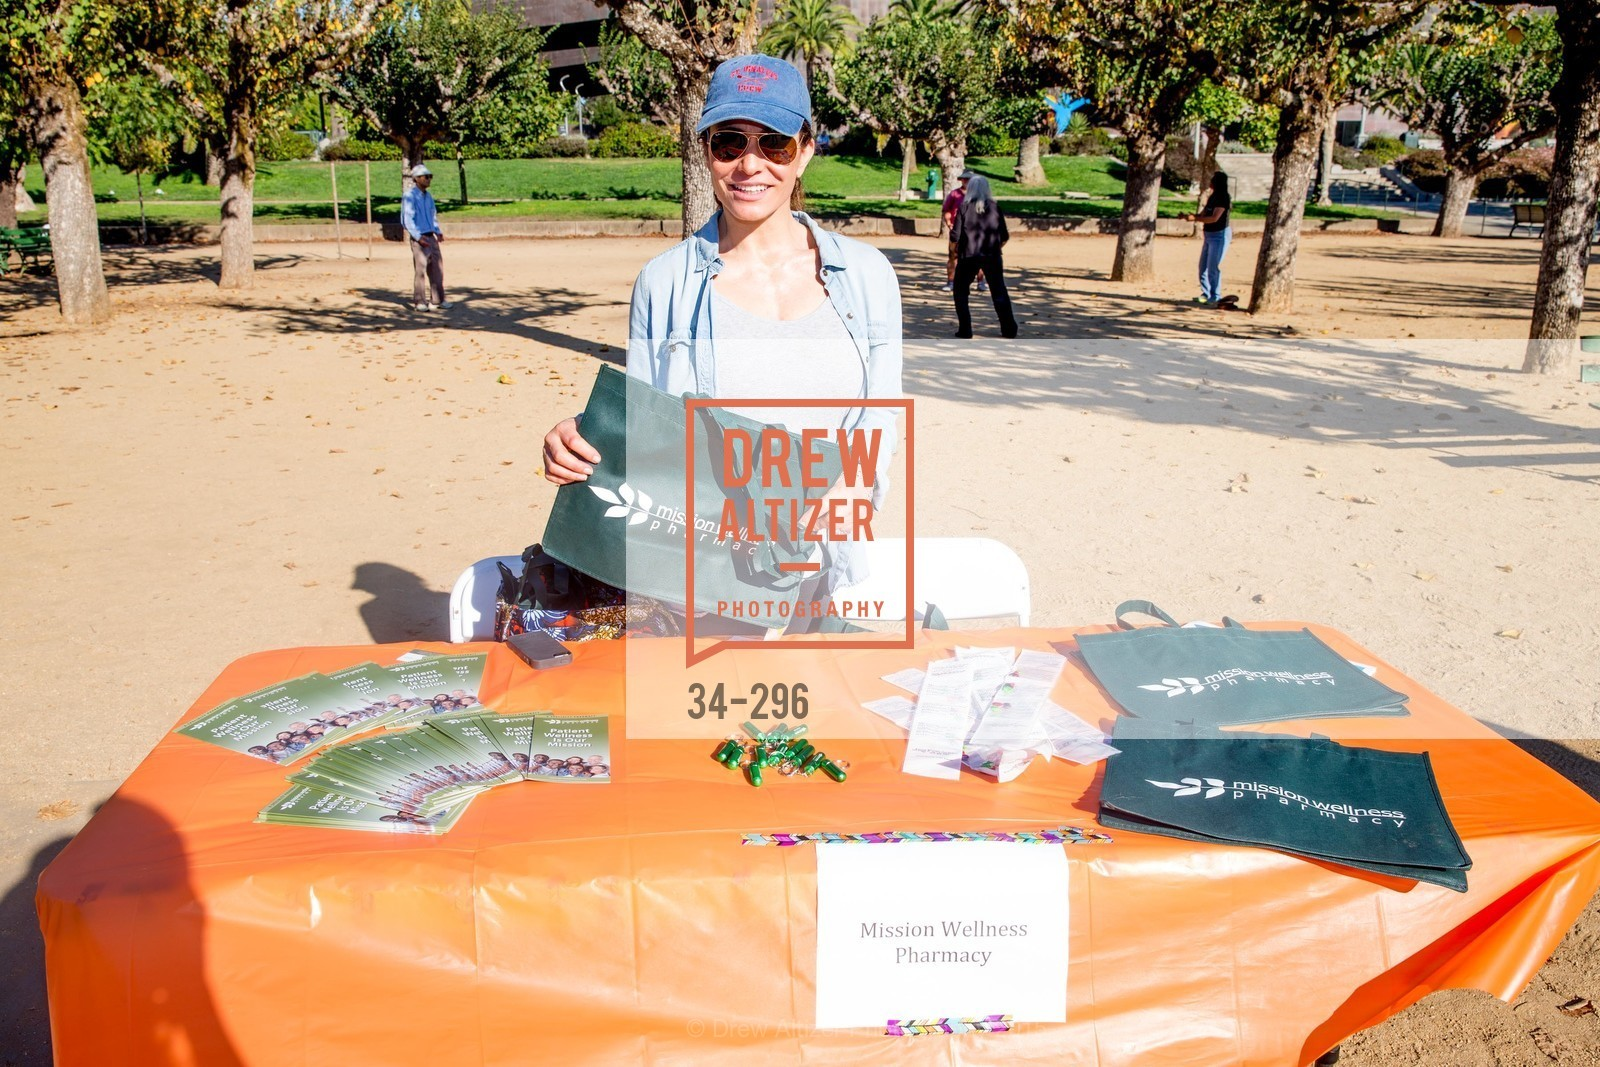 Top Picks, American Liver Foundation - San Francisco Liver Life Walk 2015, September 20th, 2015, Photo,Drew Altizer, Drew Altizer Photography, full-service agency, private events, San Francisco photographer, photographer california